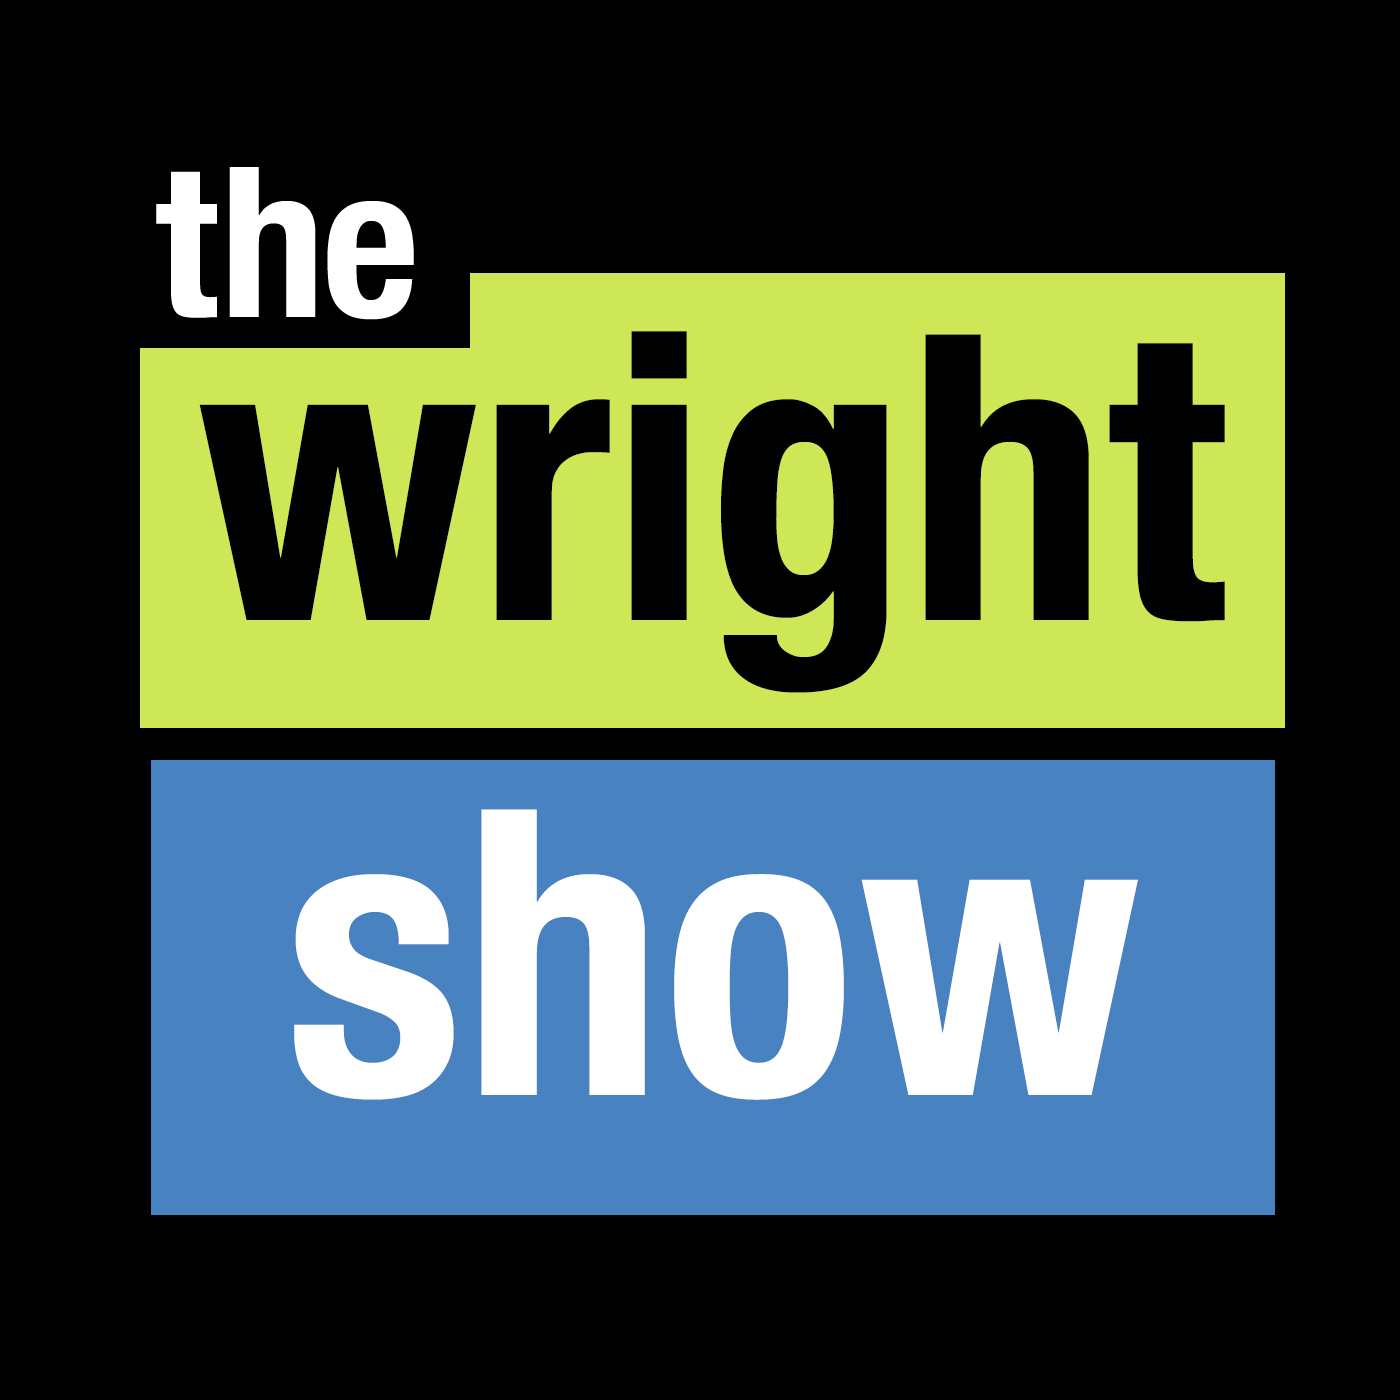 The Wright Show